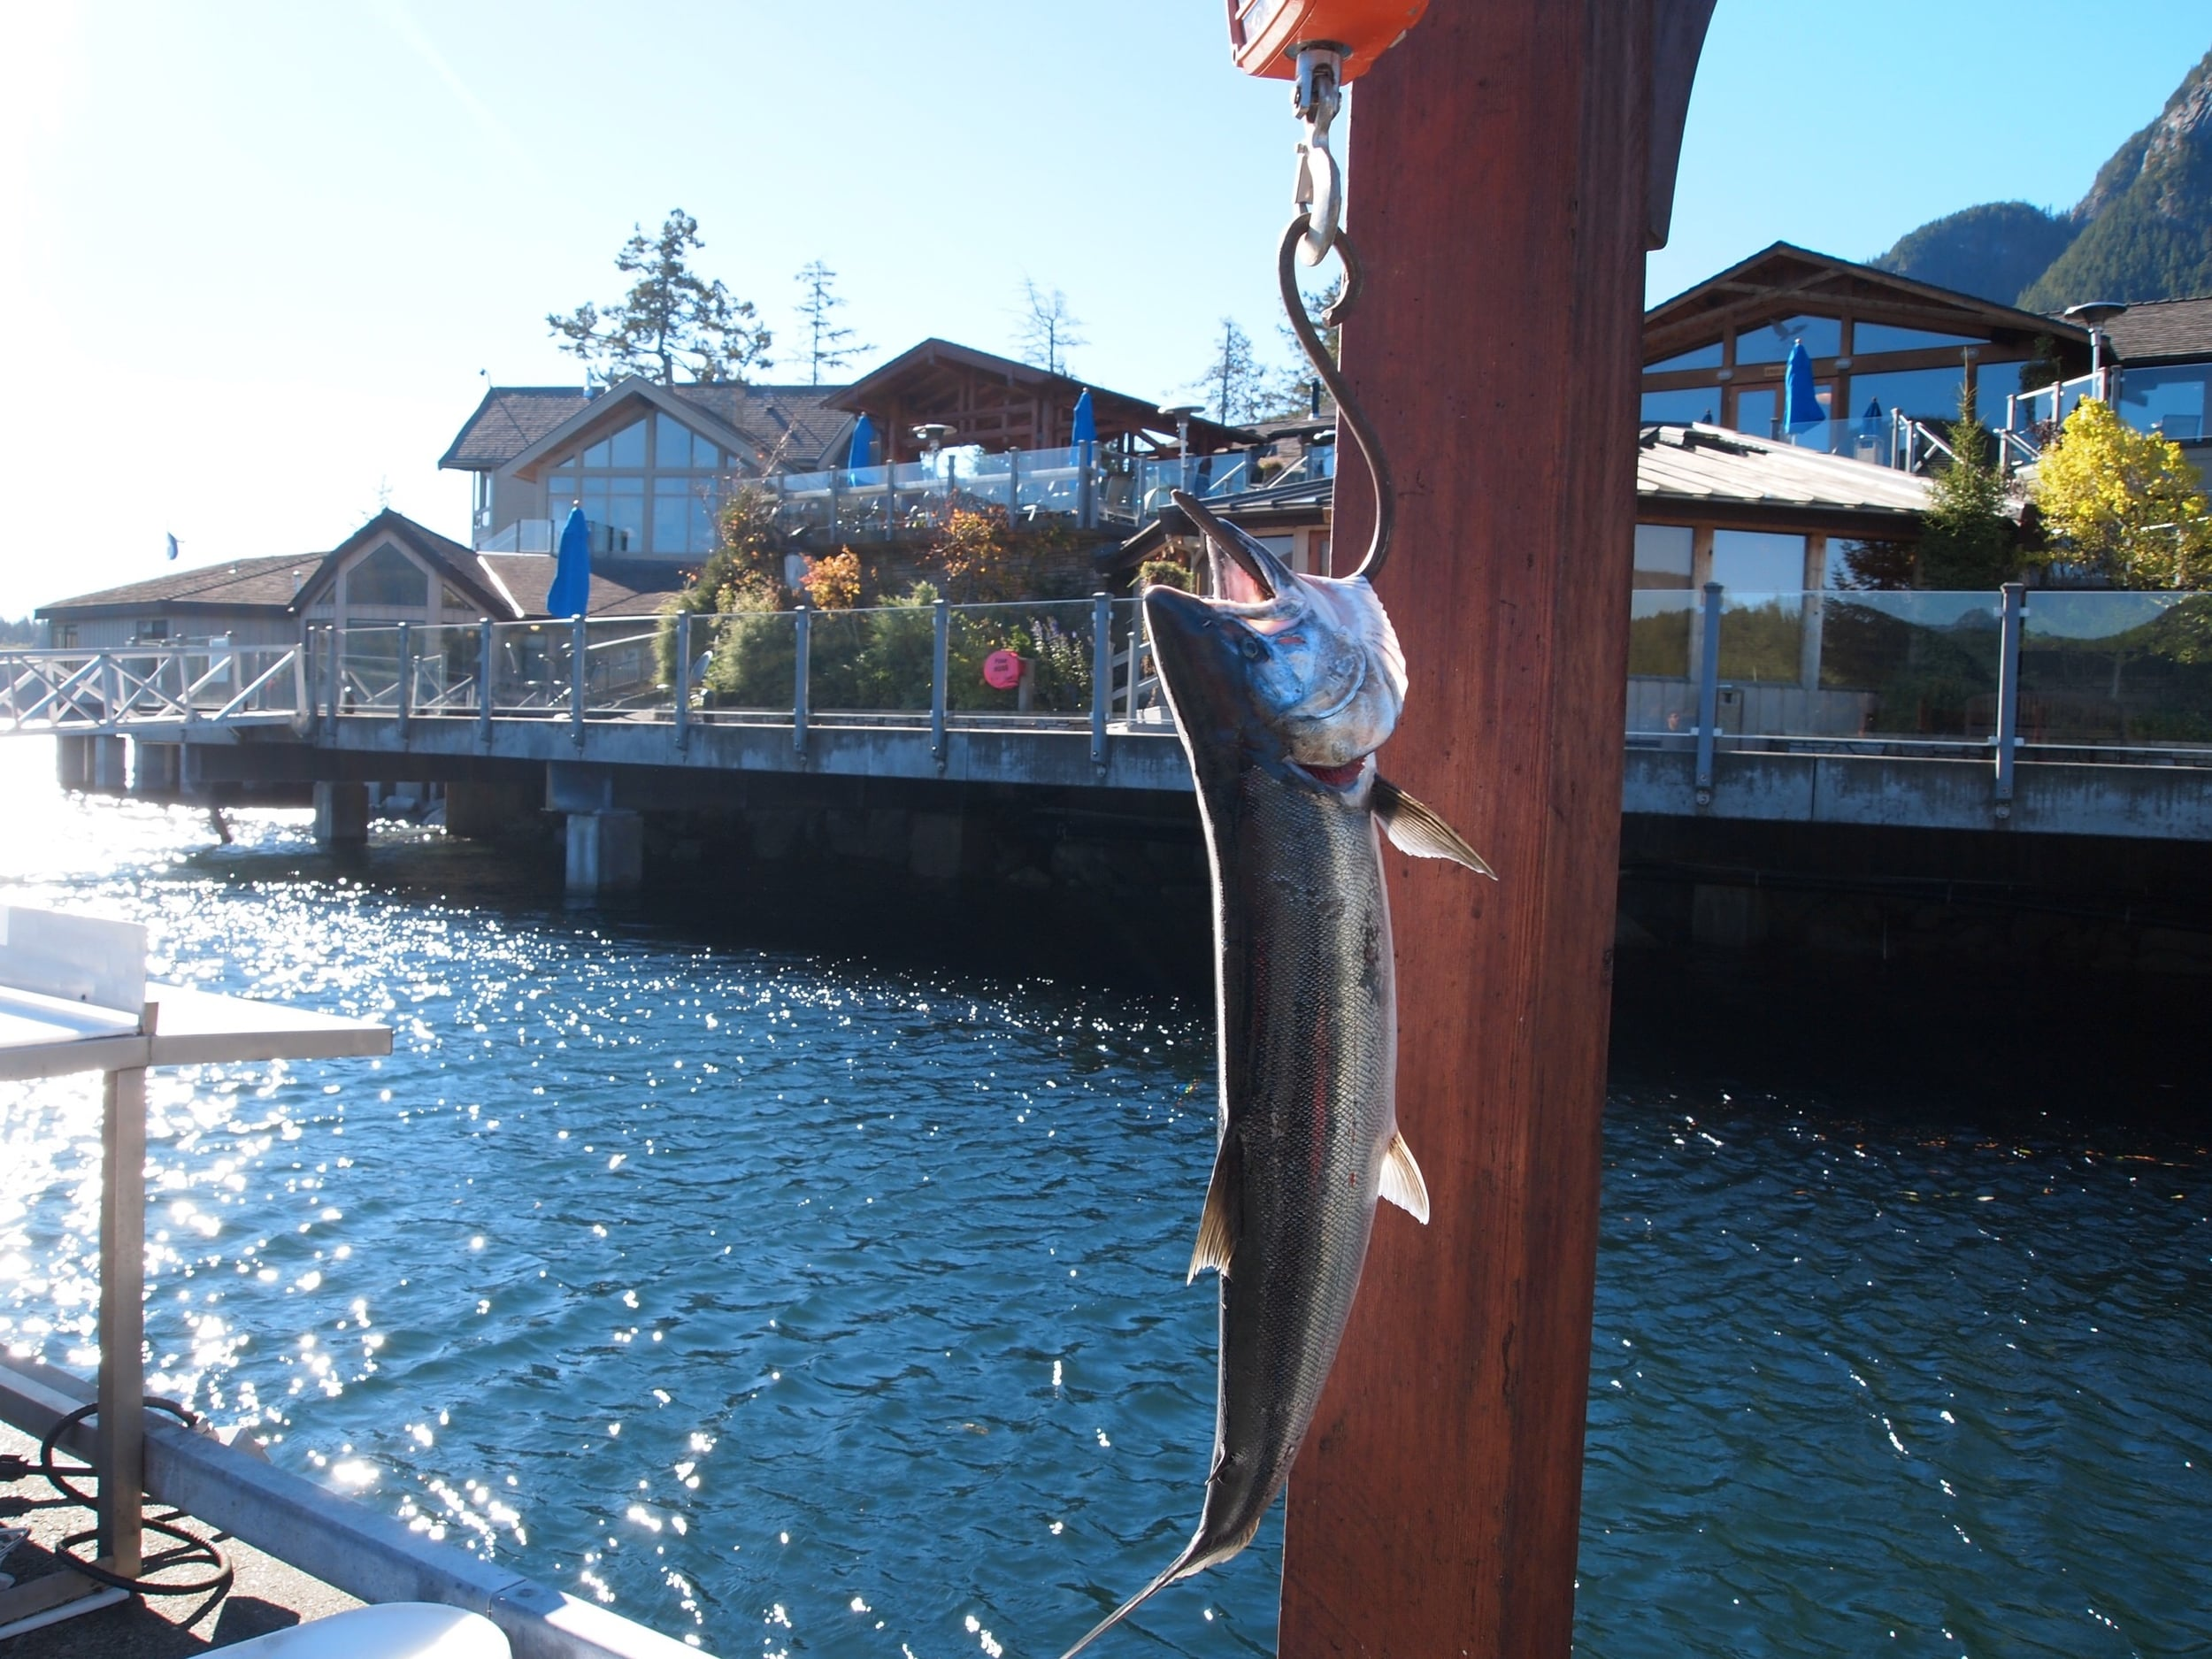 Weighing my salmon on the scale in front of the resort.